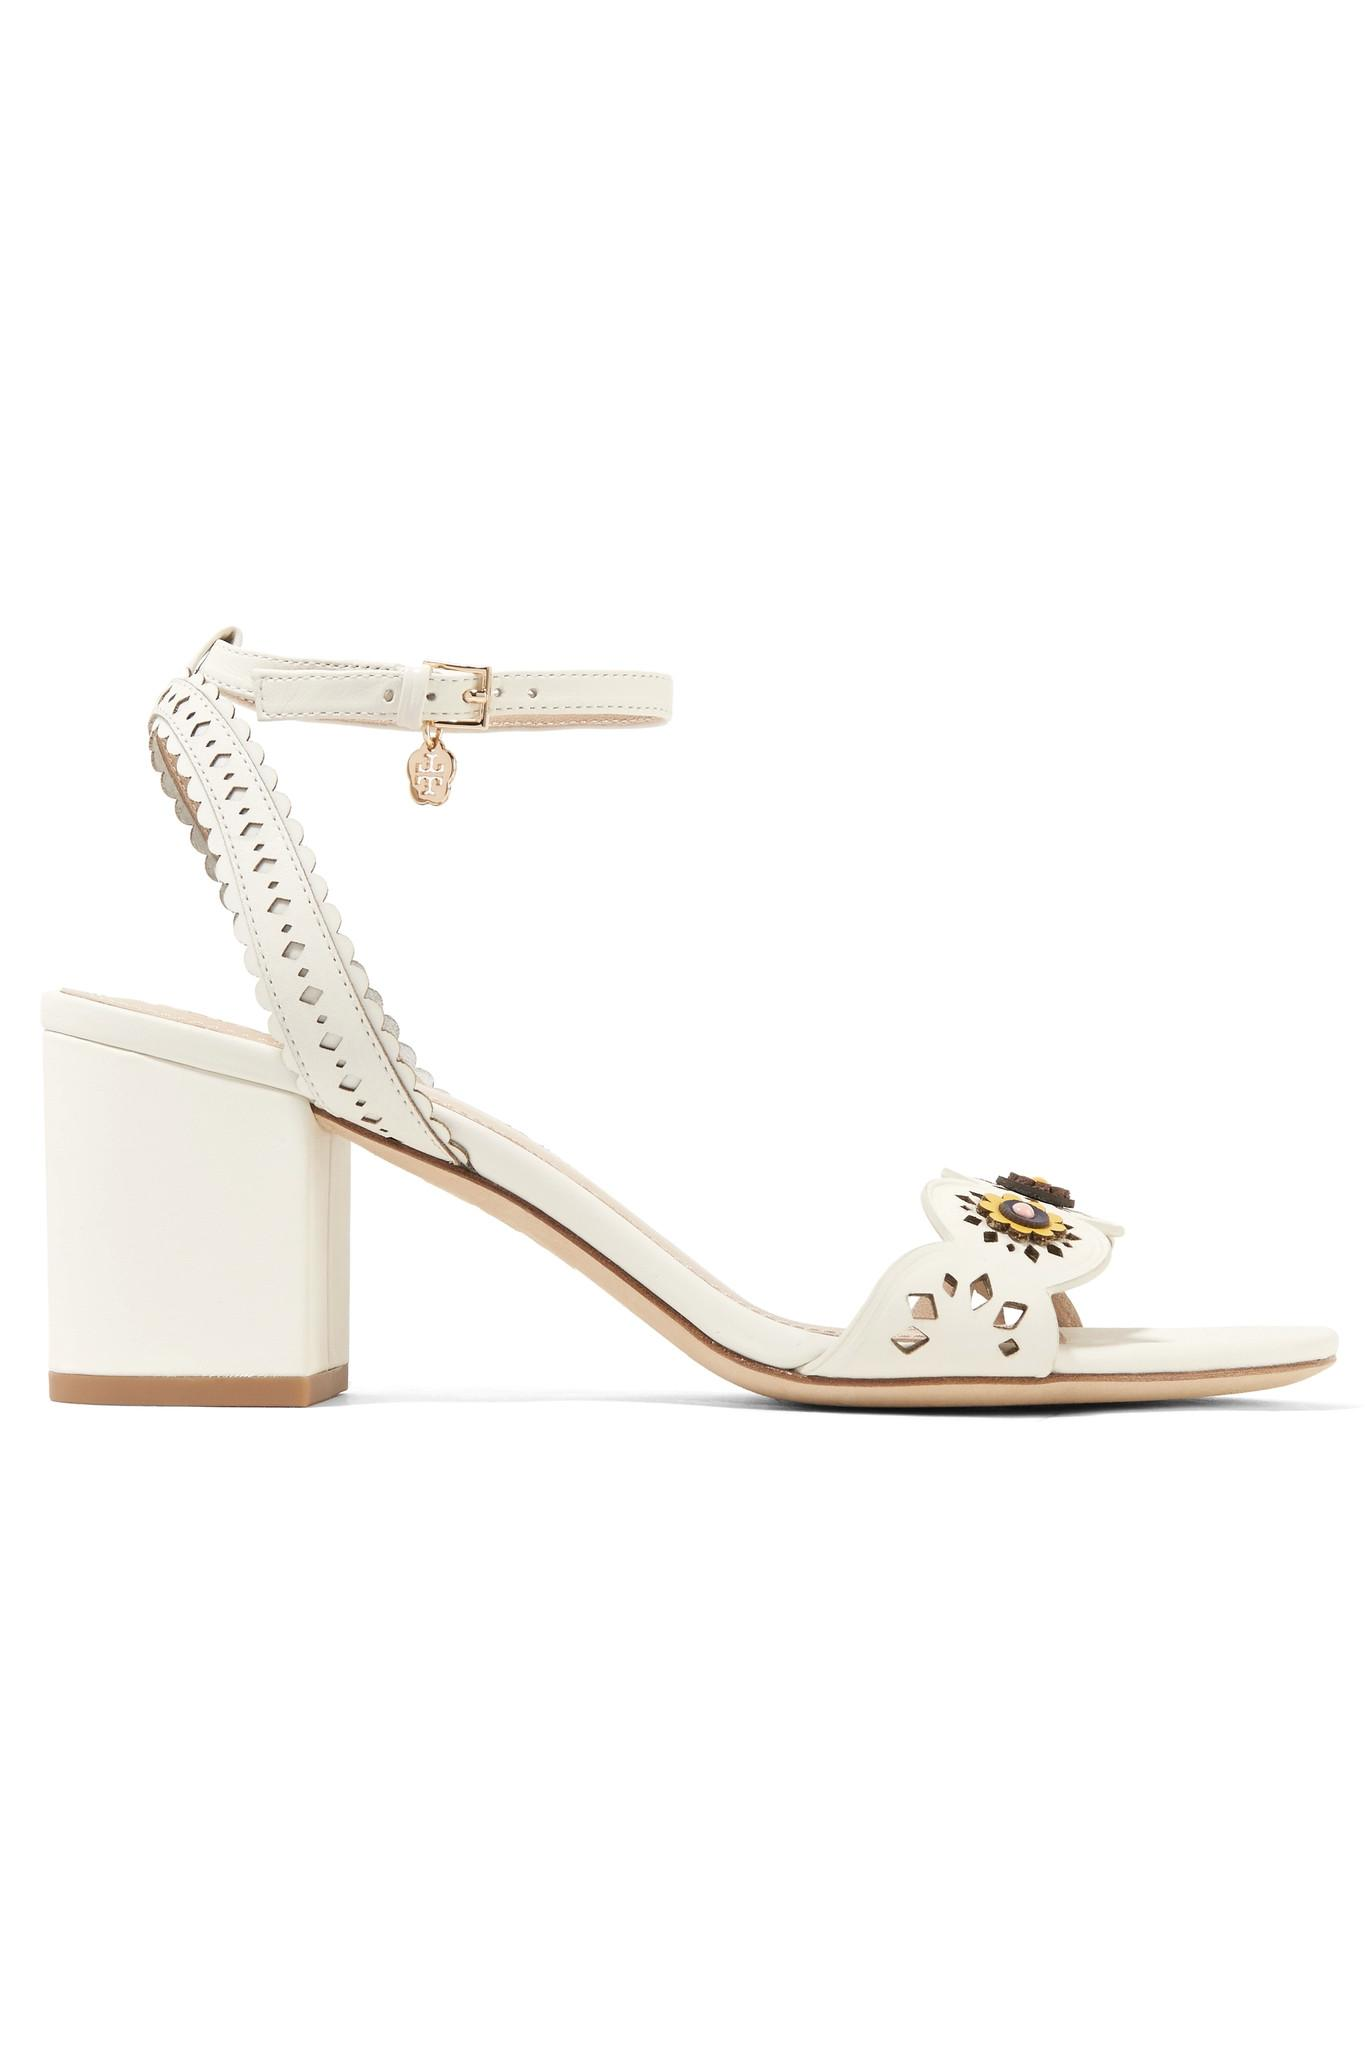 abdfae9570892 Tory Burch - White Marguerite Embellished Perforated Leather Sandals - Lyst